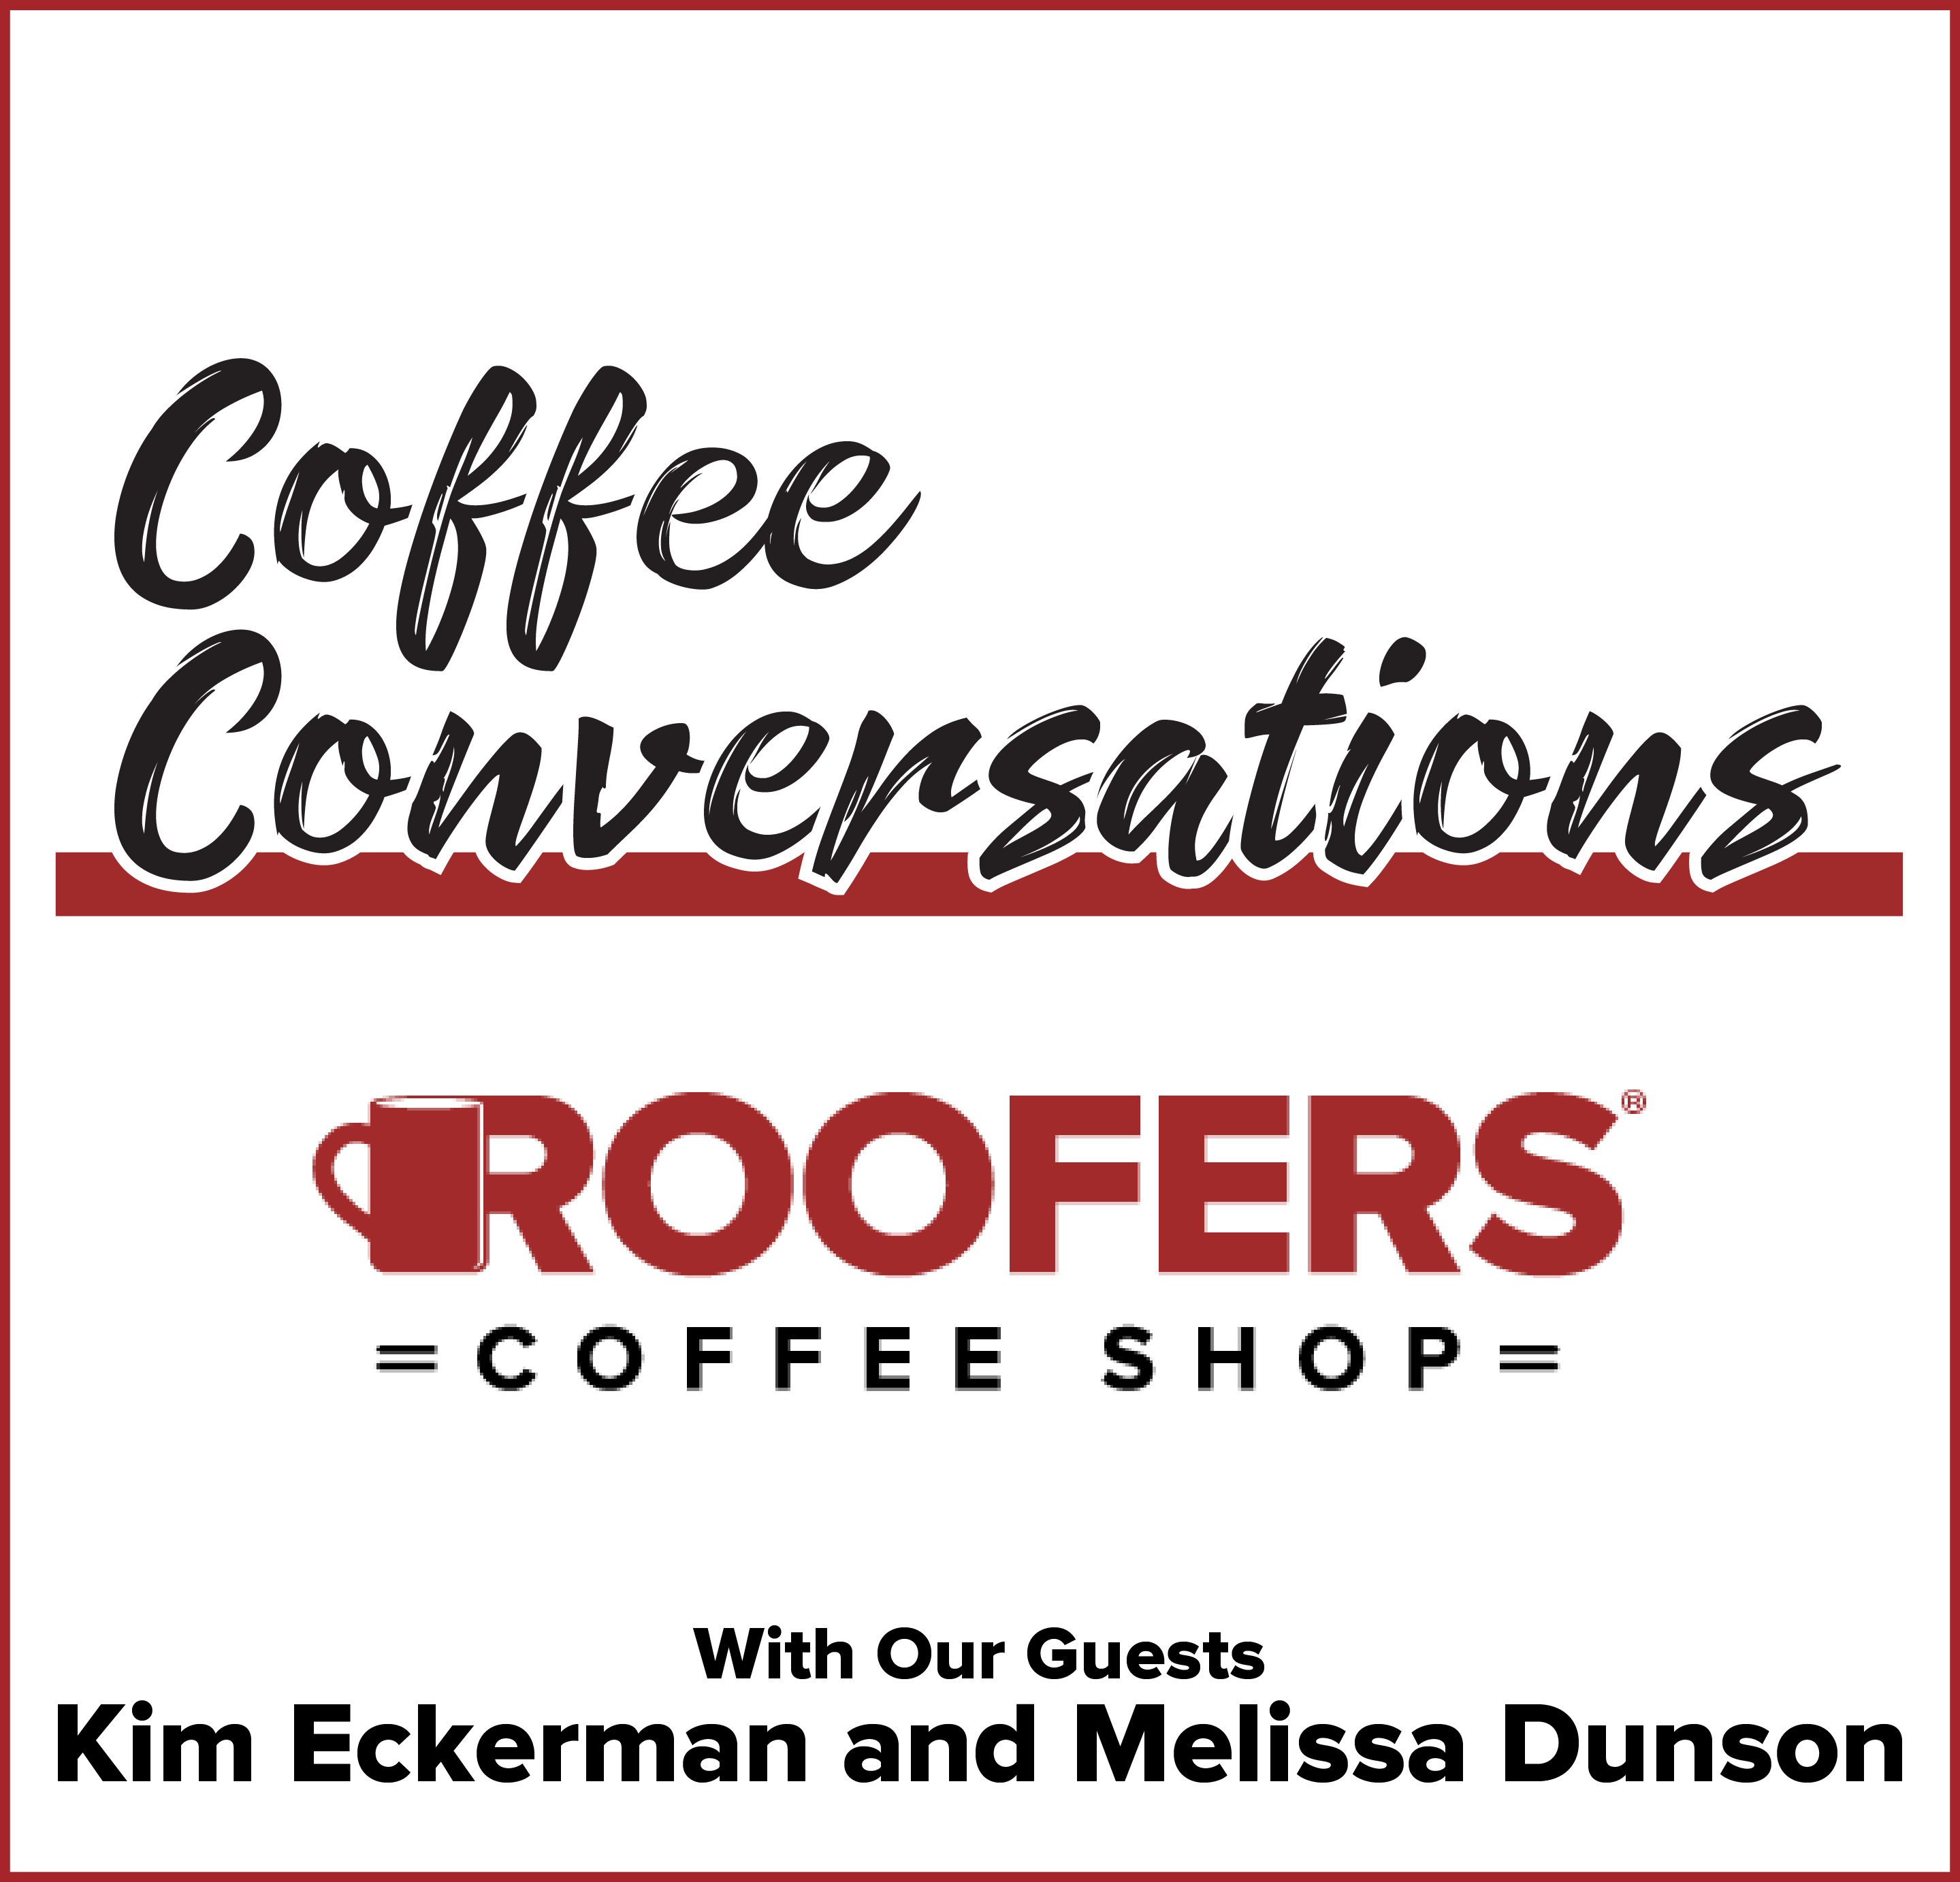 TAMKO -  Coffee Conversations with With Kim Eckerman and Melissa Dunson of TAMKO!